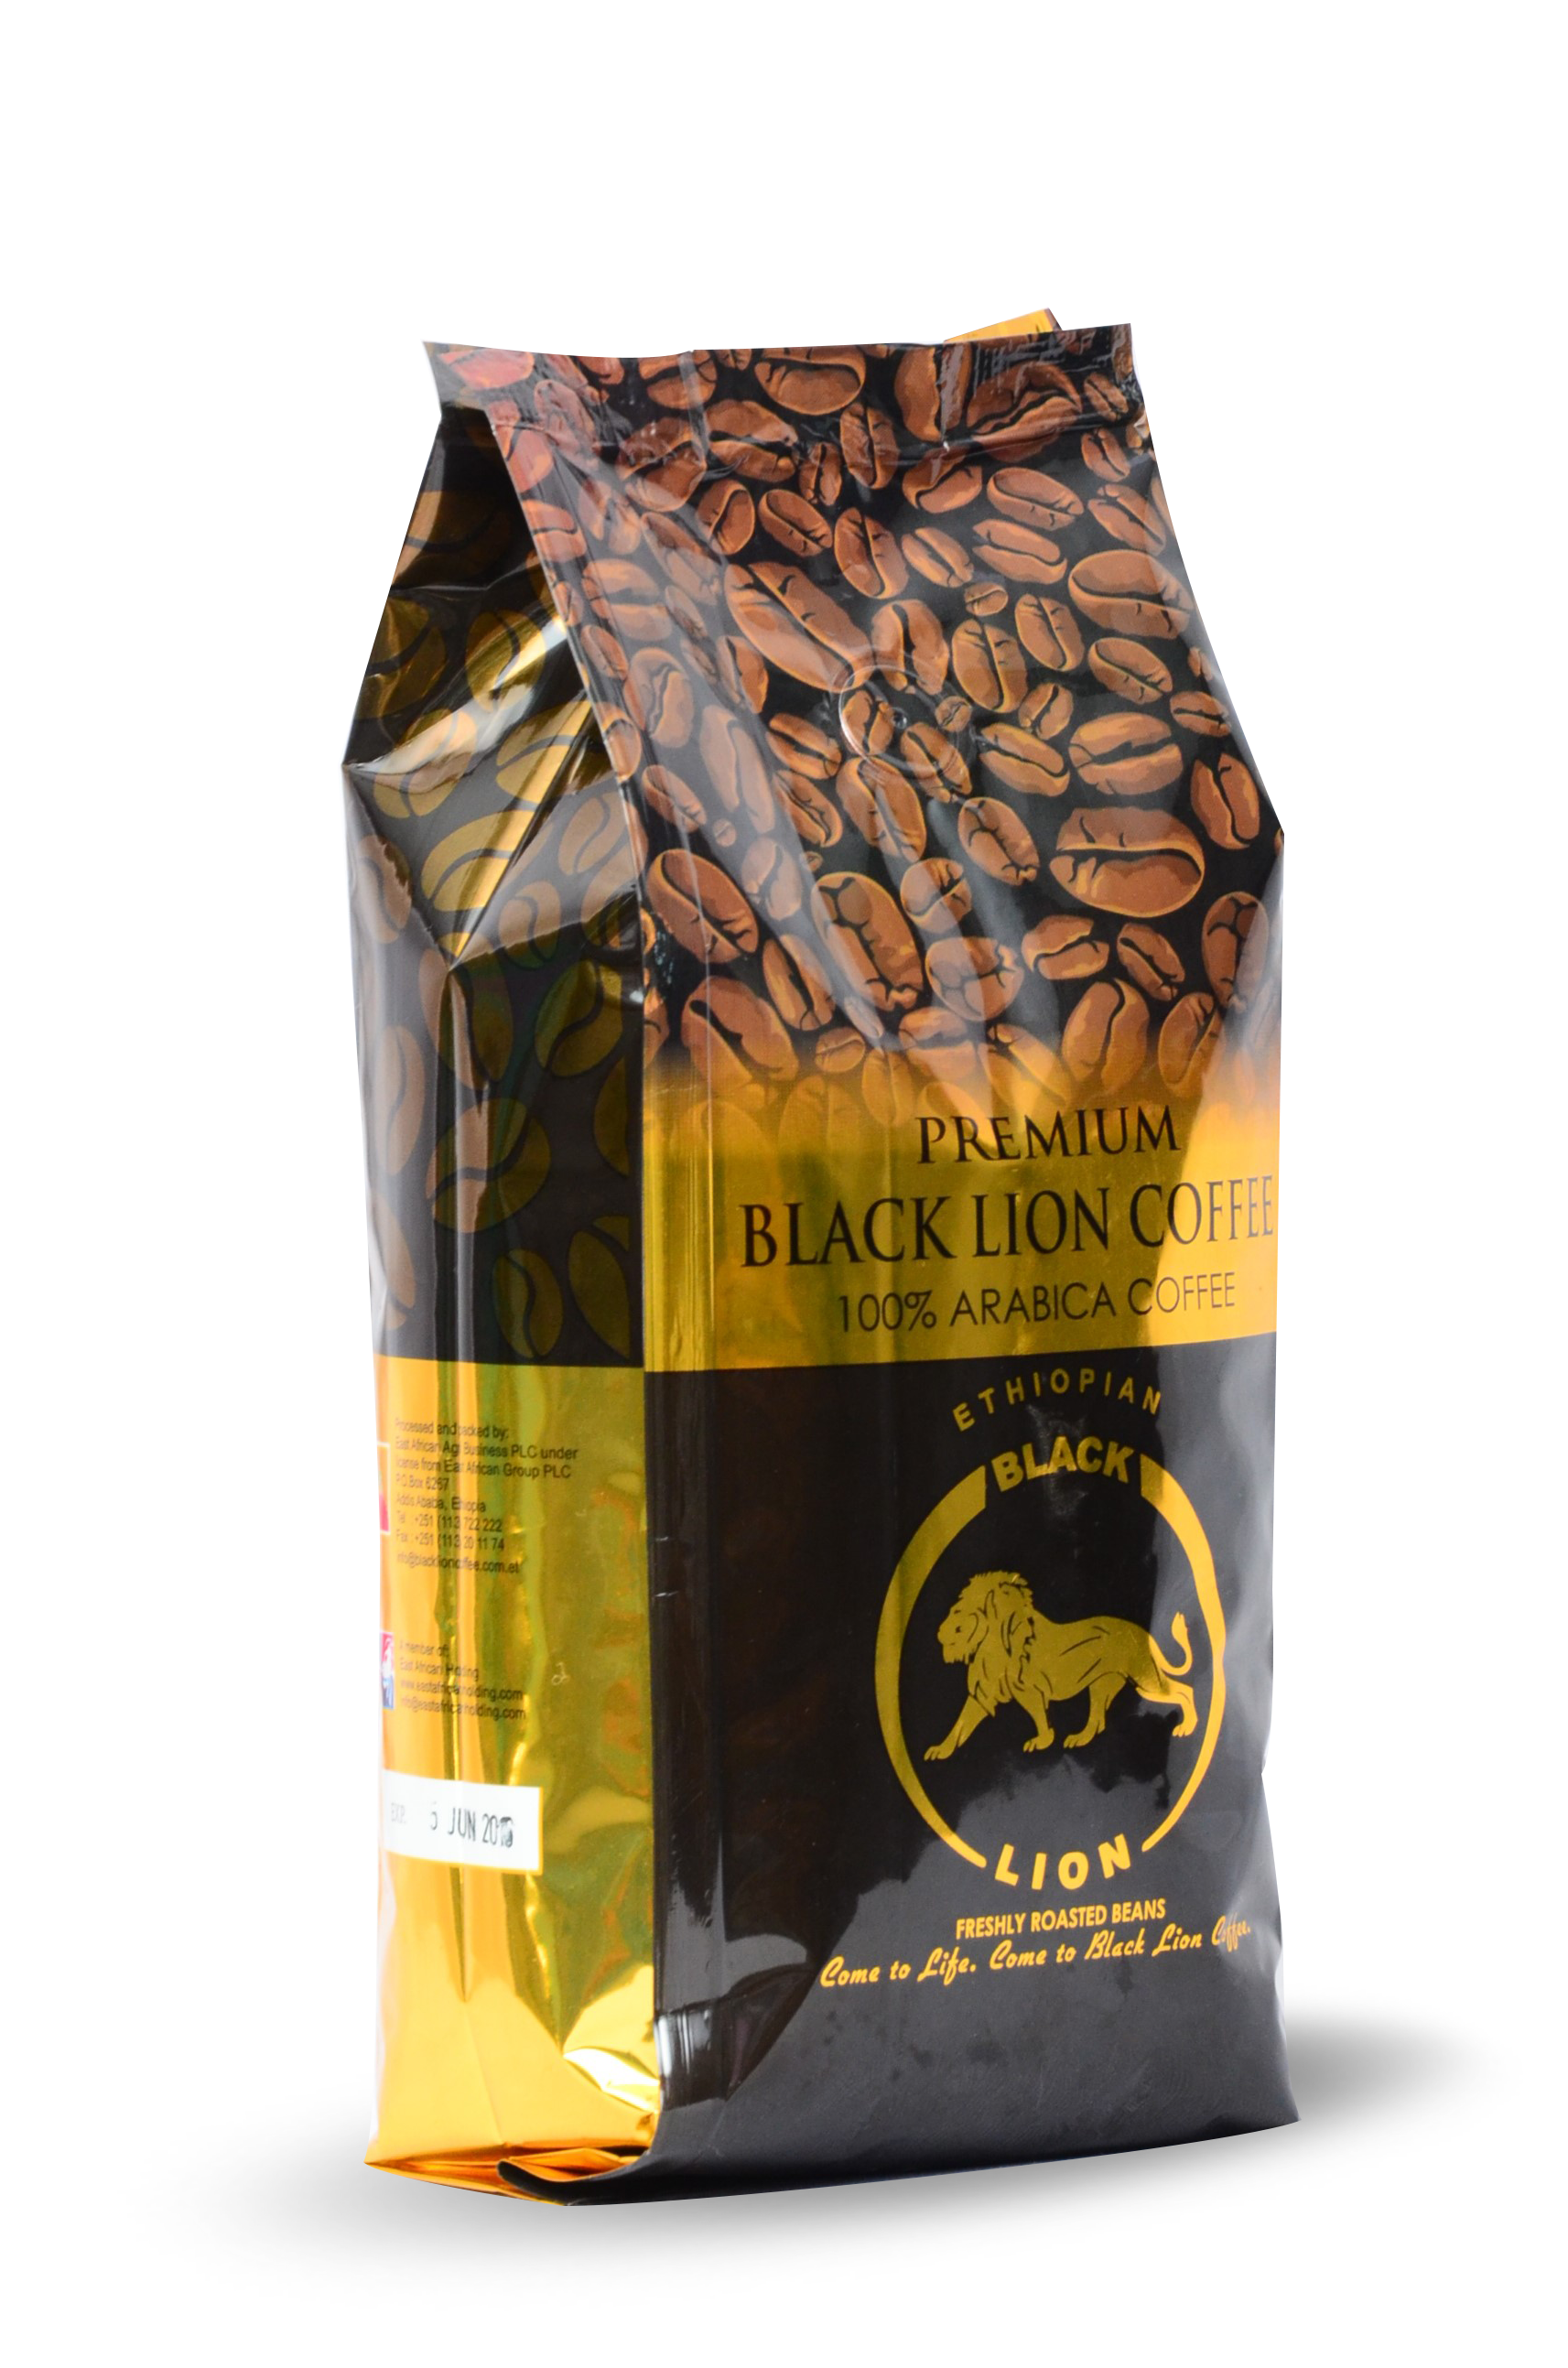 500gm (1.6Oz) Roasted Bean Black Lion Premium Coffee Image